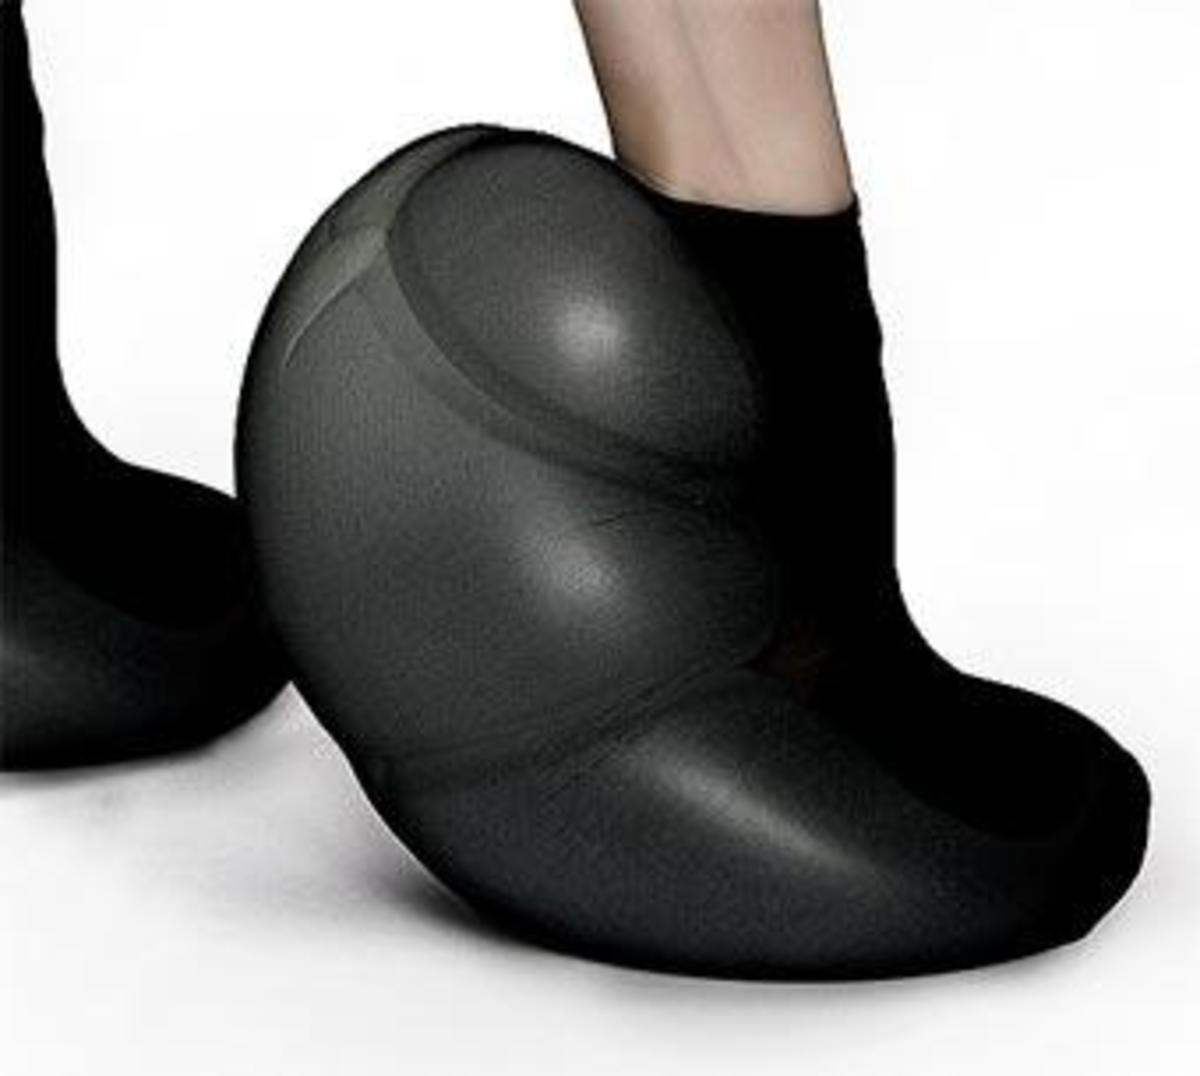 Don't walk on any kind of rough surface with these or the foam will rip, rendering your bank account $3,000 poorer.